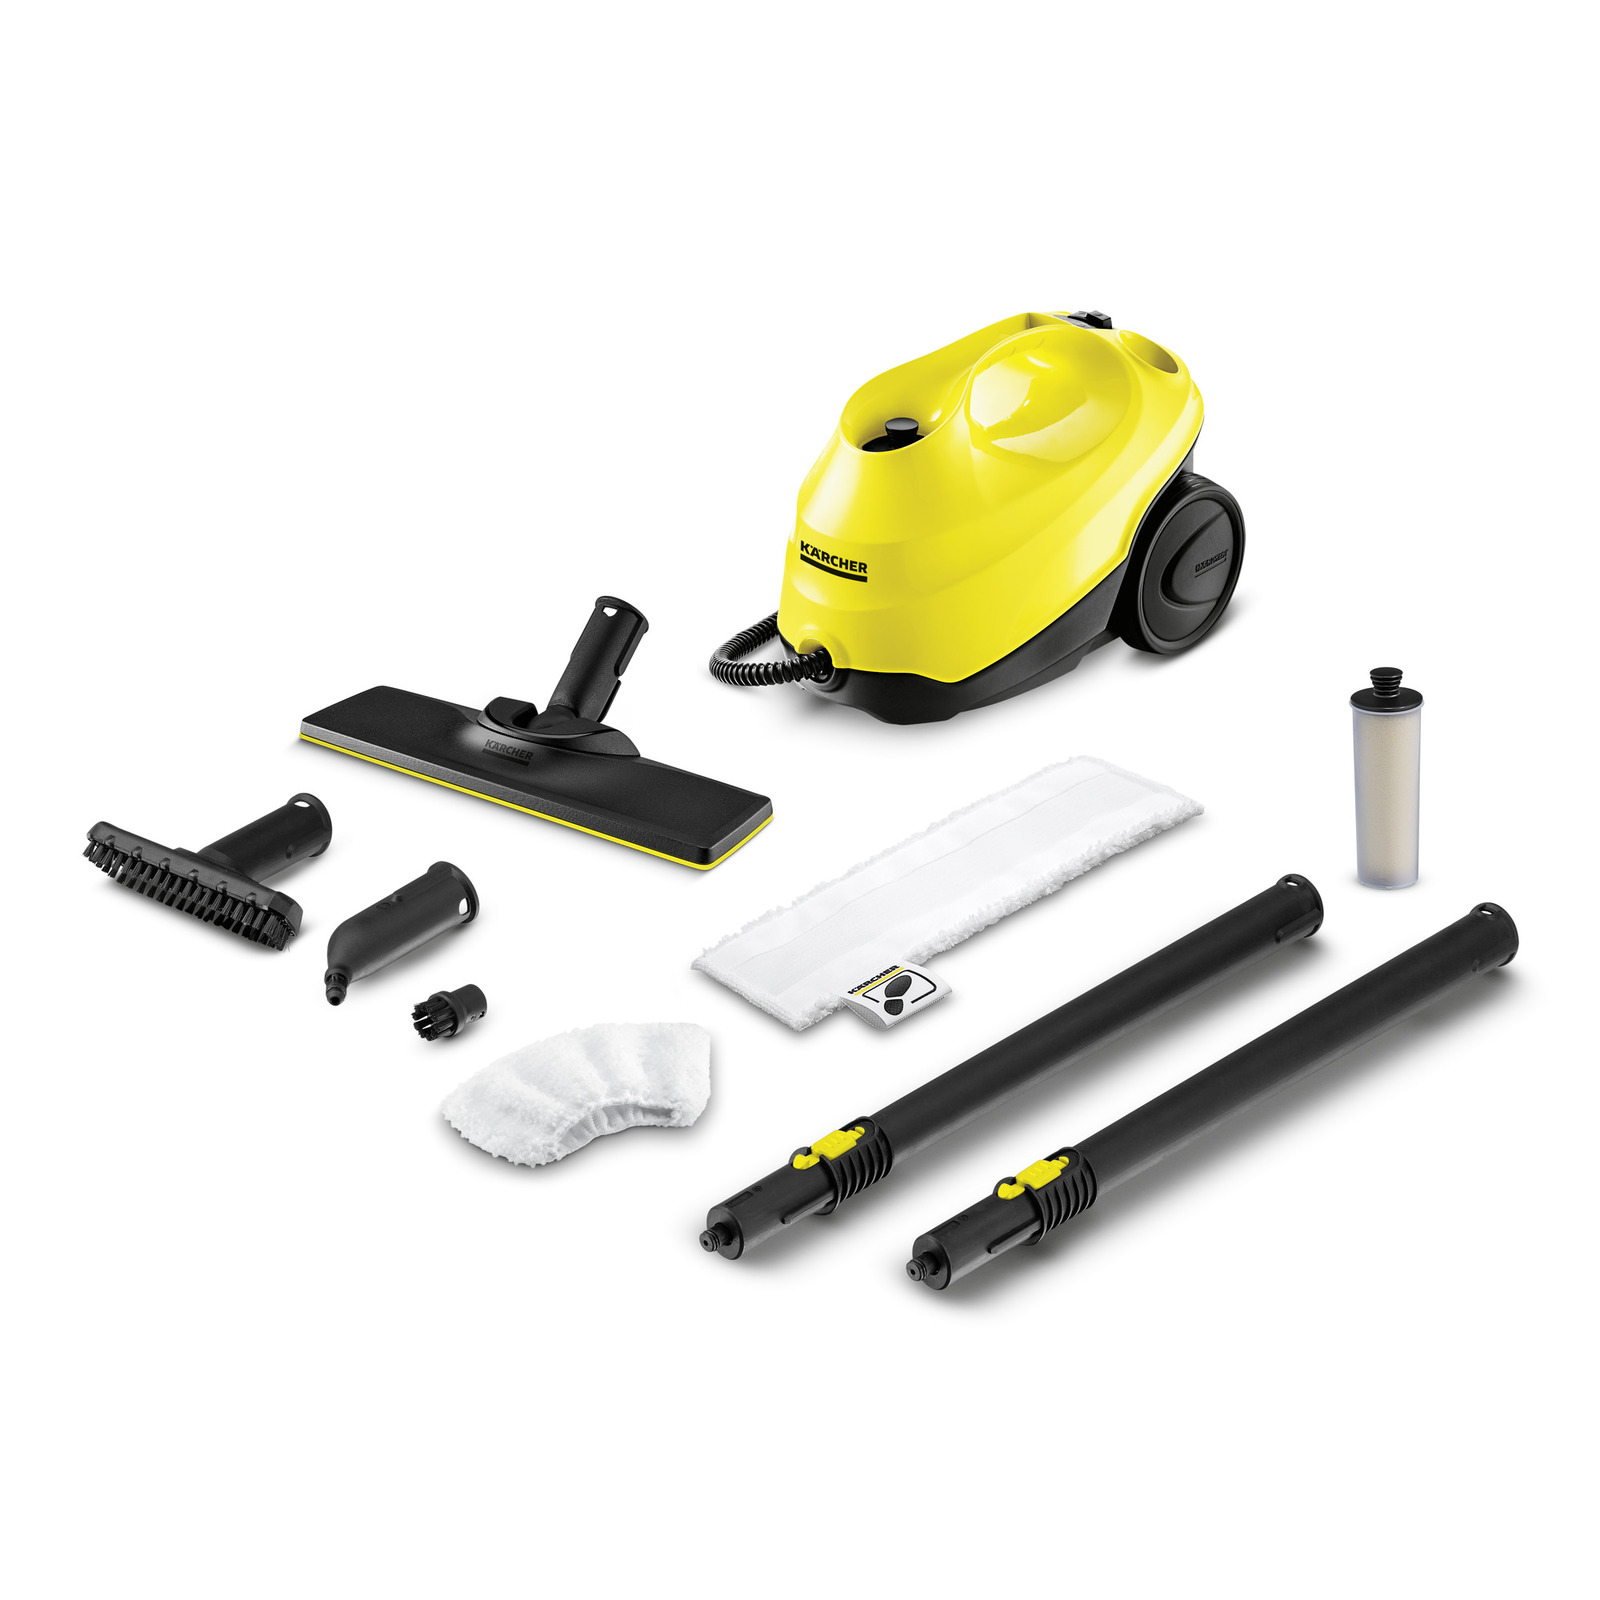 Steam cleaners steam mops k rcher uk - Karcher nettoyeur vapeur sc3 ...